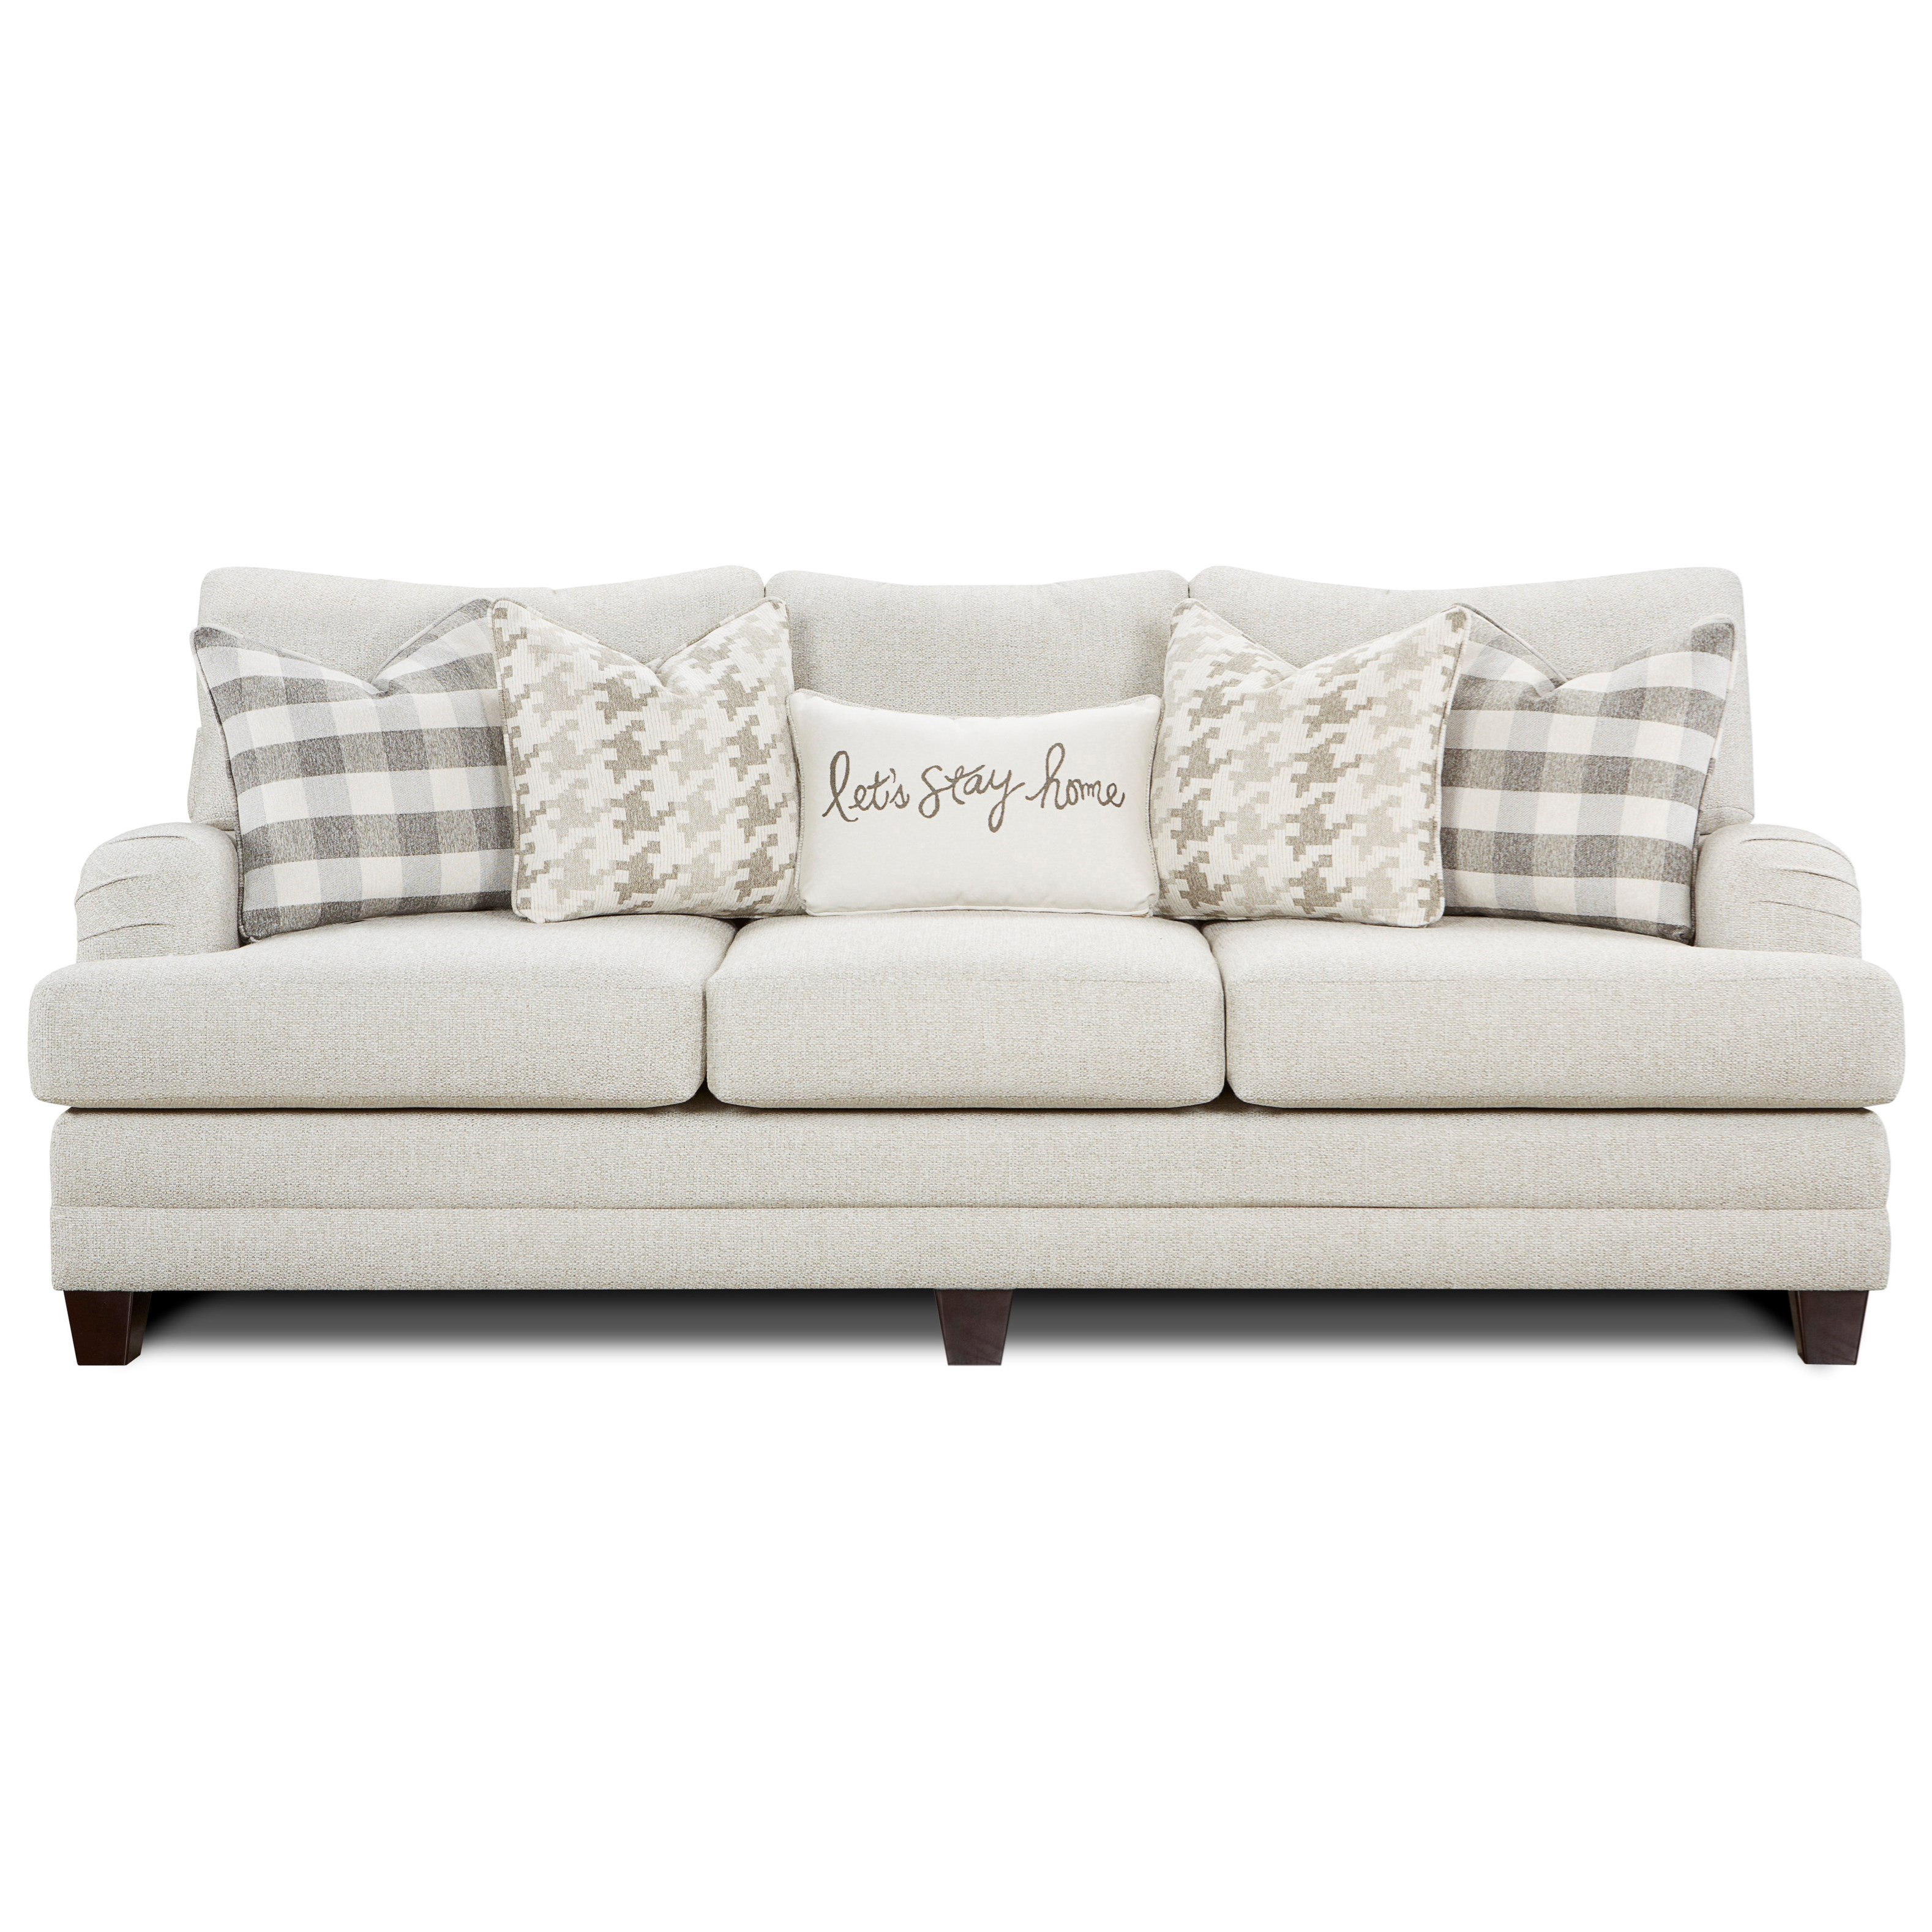 4480-KP Sofa by Fusion Furniture at Prime Brothers Furniture